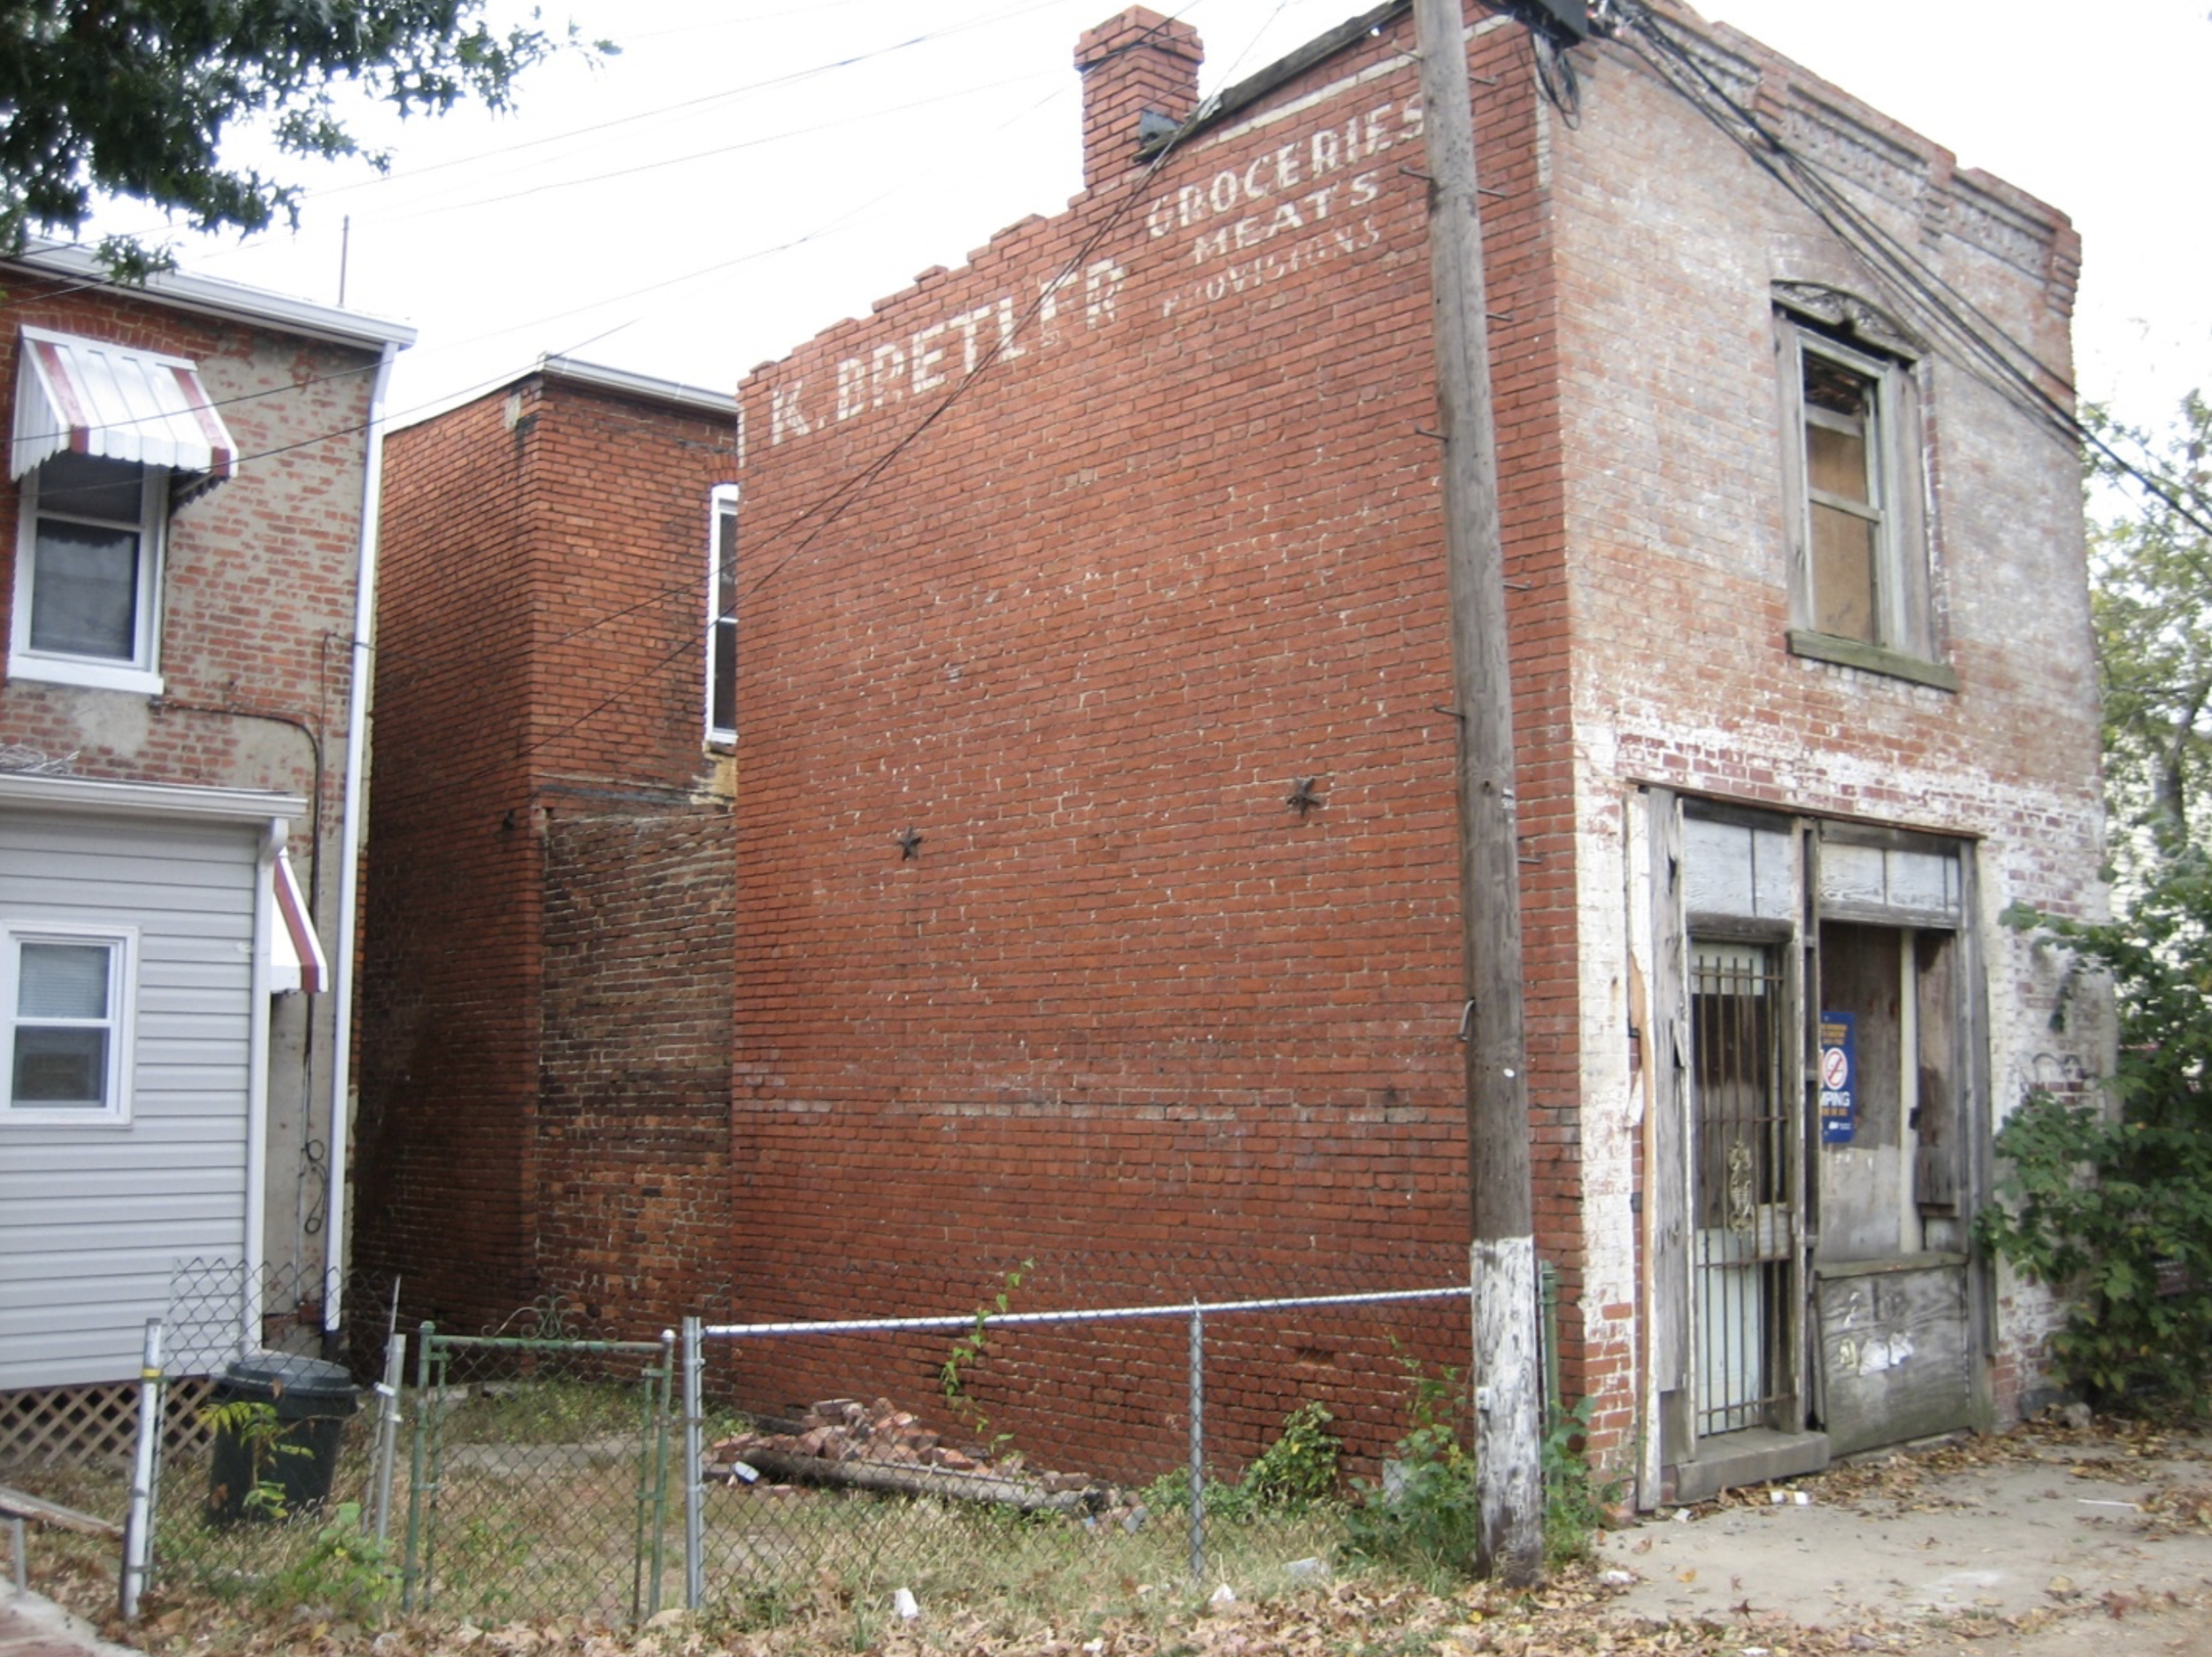 Butcher Shop Grocery Store on Capital Hill Renovation Brick Building Before Photo